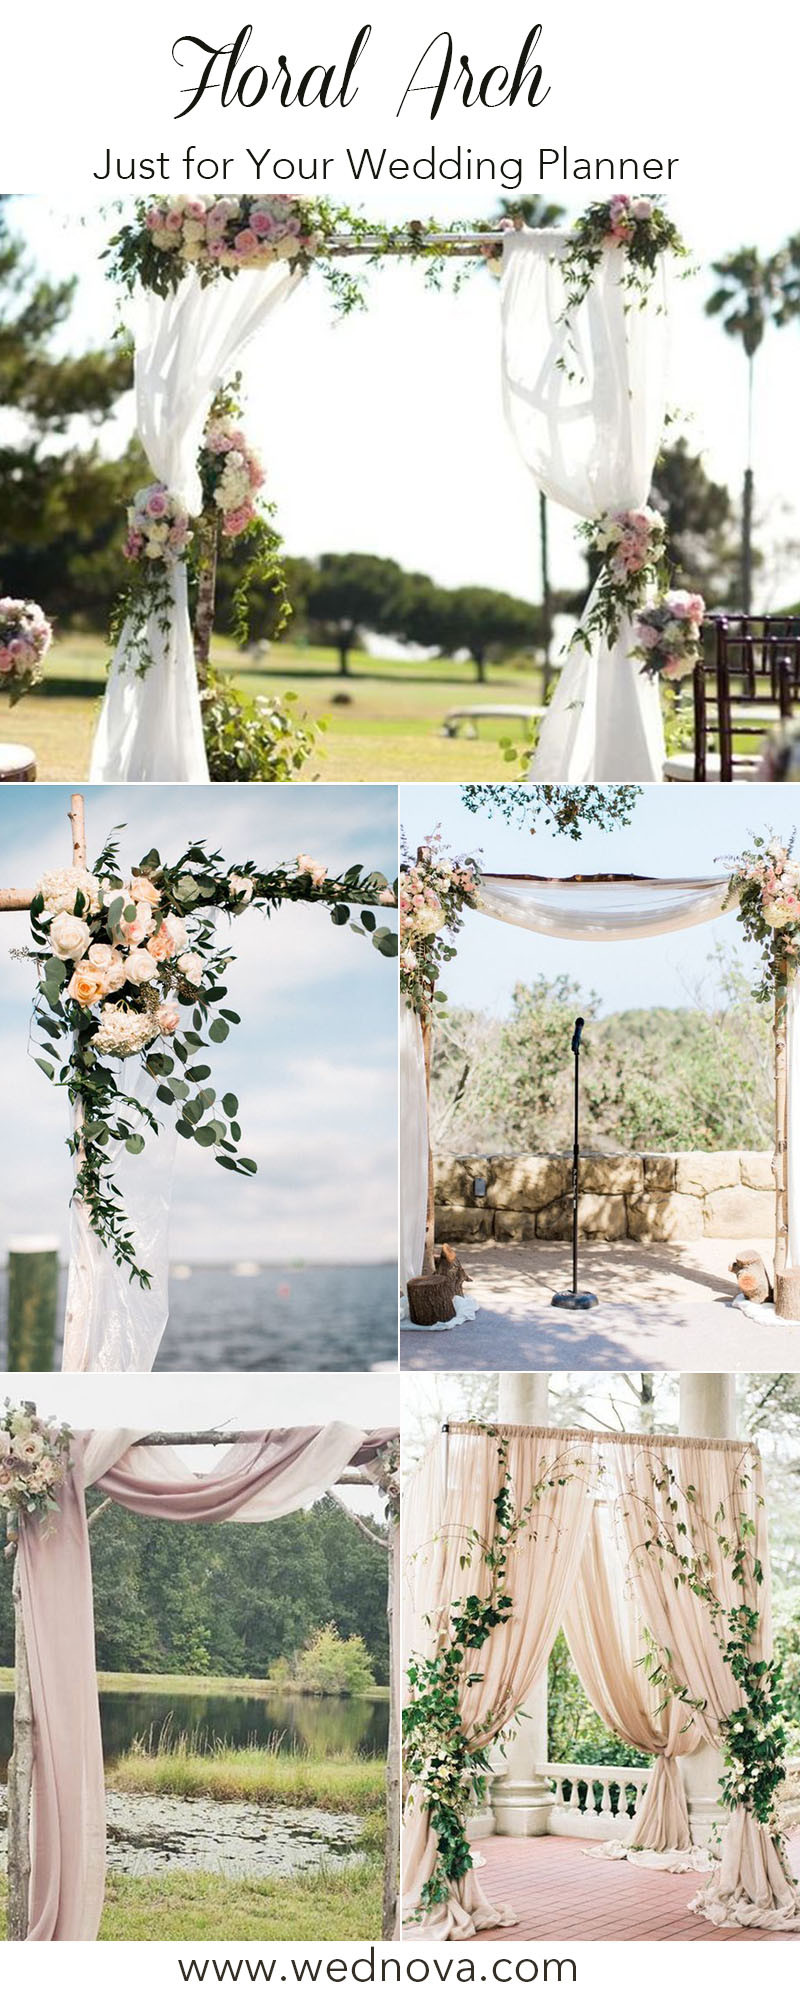 5 Unique And Personalized Wedding Arch Ideas Wednova Blog